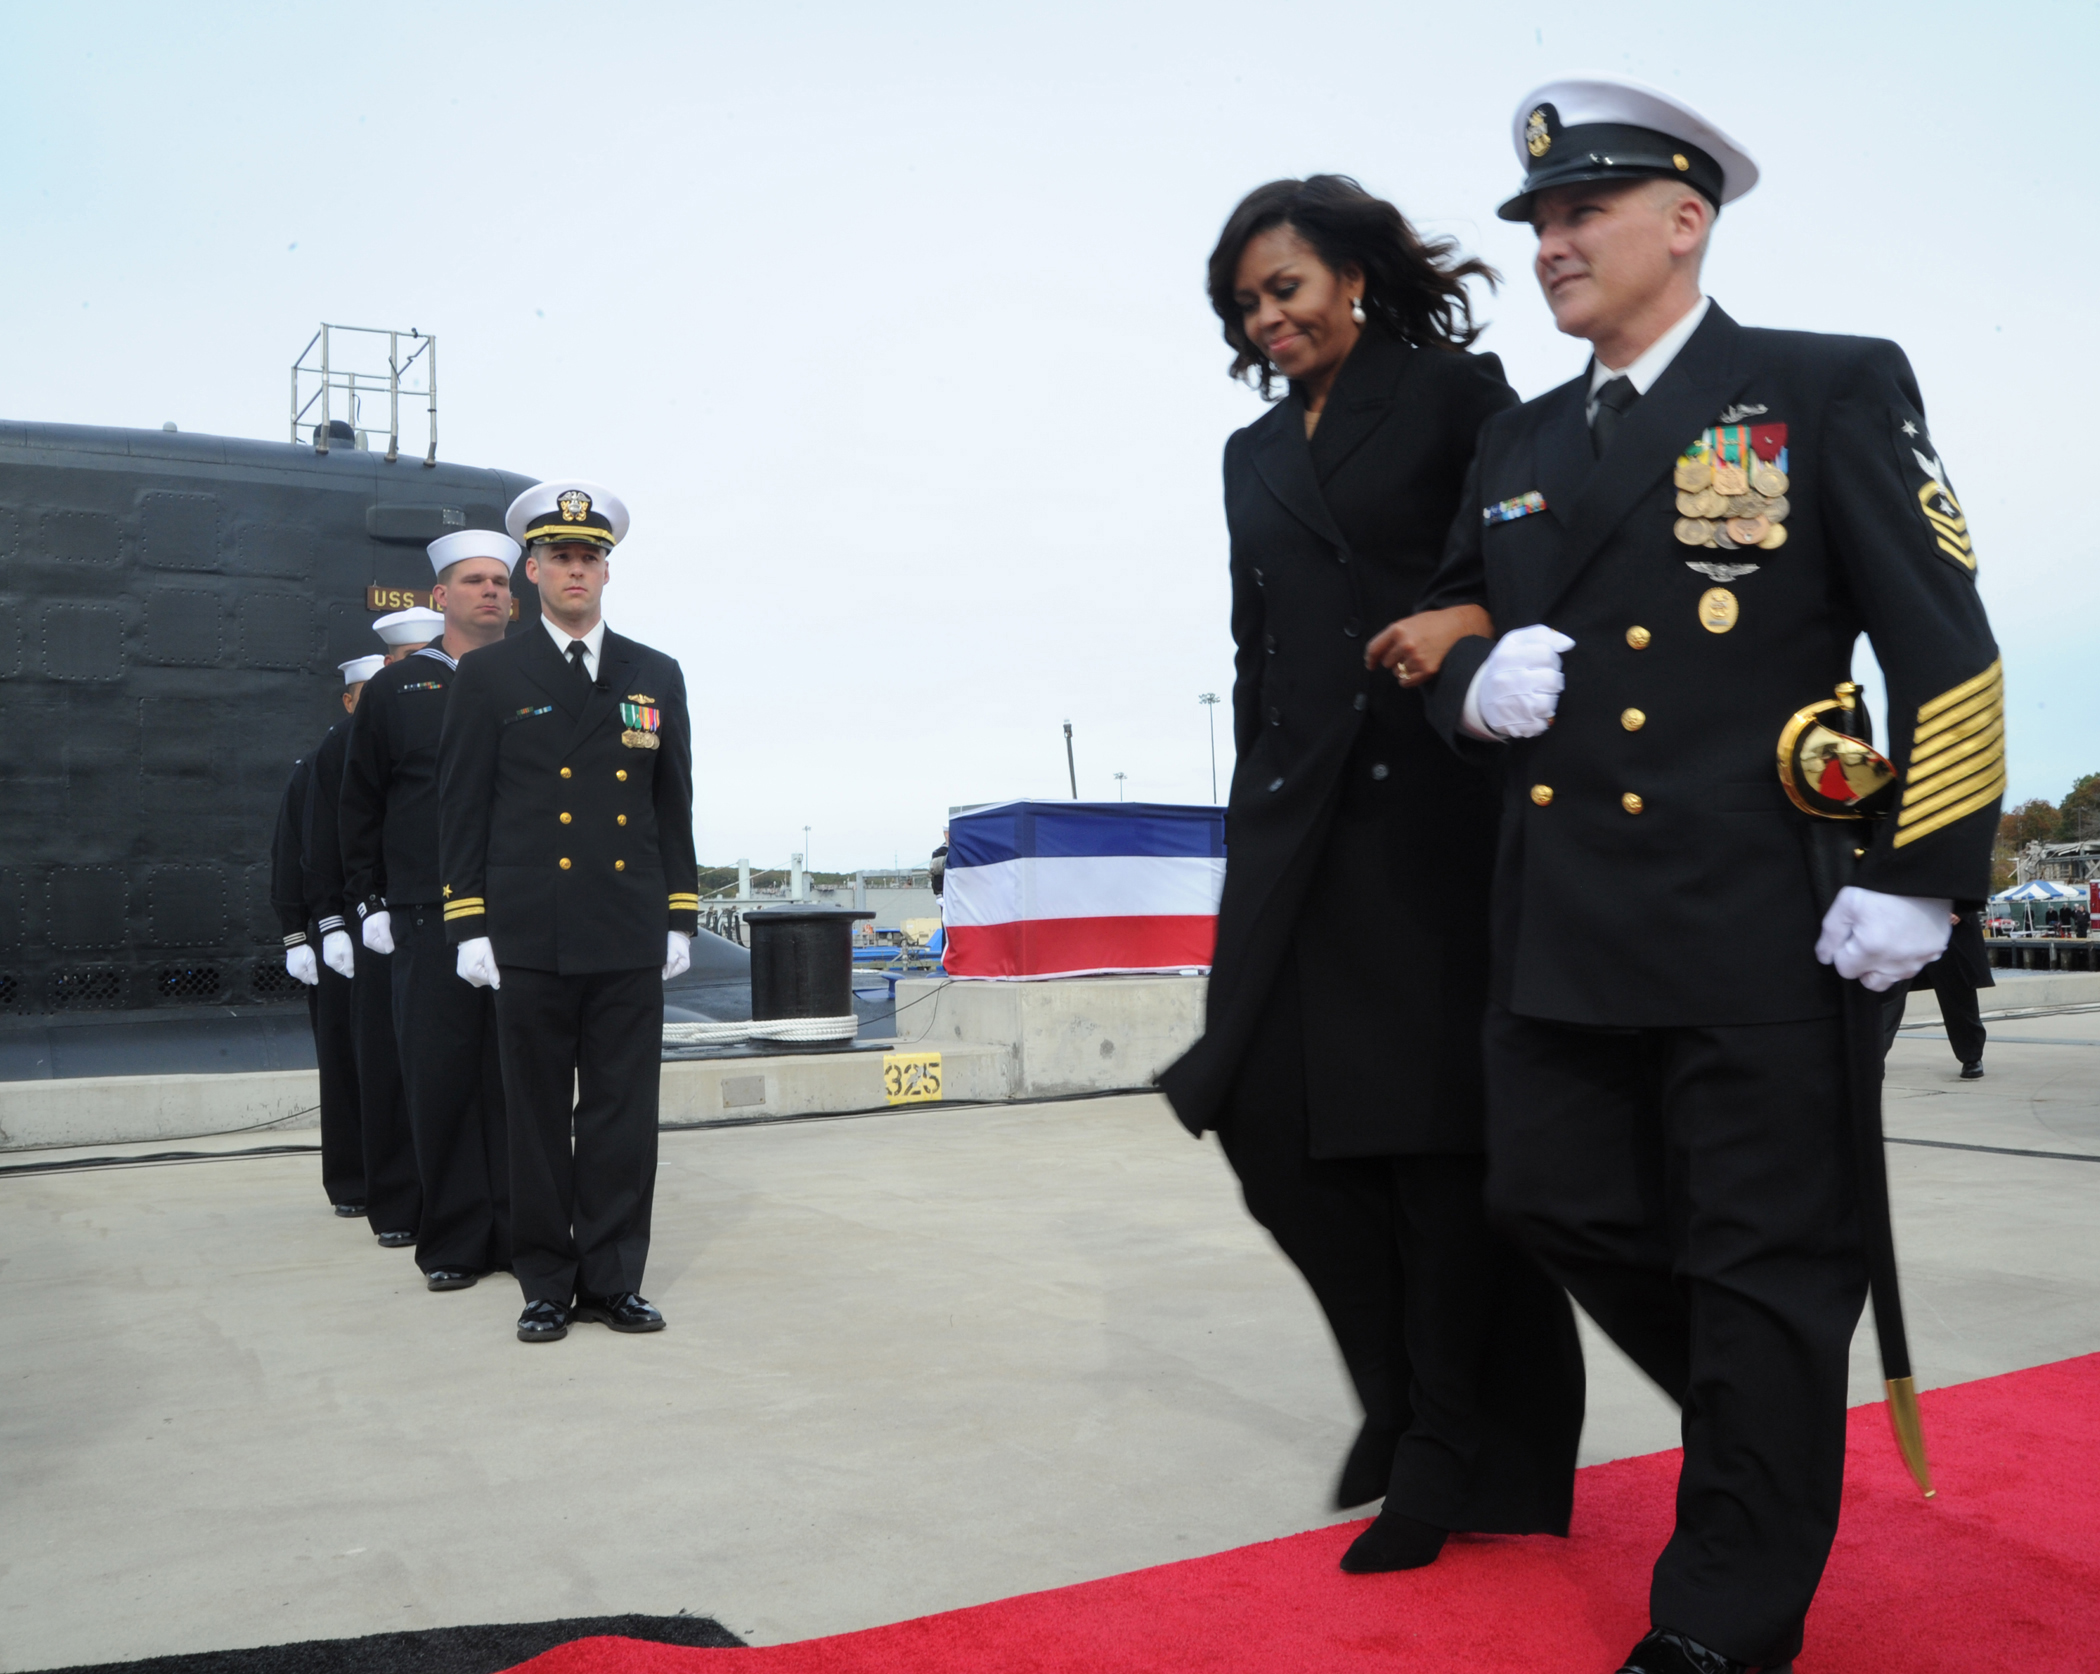 W ceremonii włączenia do służby atomowego okrętu podwodnego USS Illinois (SSN-786) wzięła udział pierwsza dama, Michelle Obama.  (U.S. Navy photo by Chief Petty Officer Darryl I. Wood/Released)